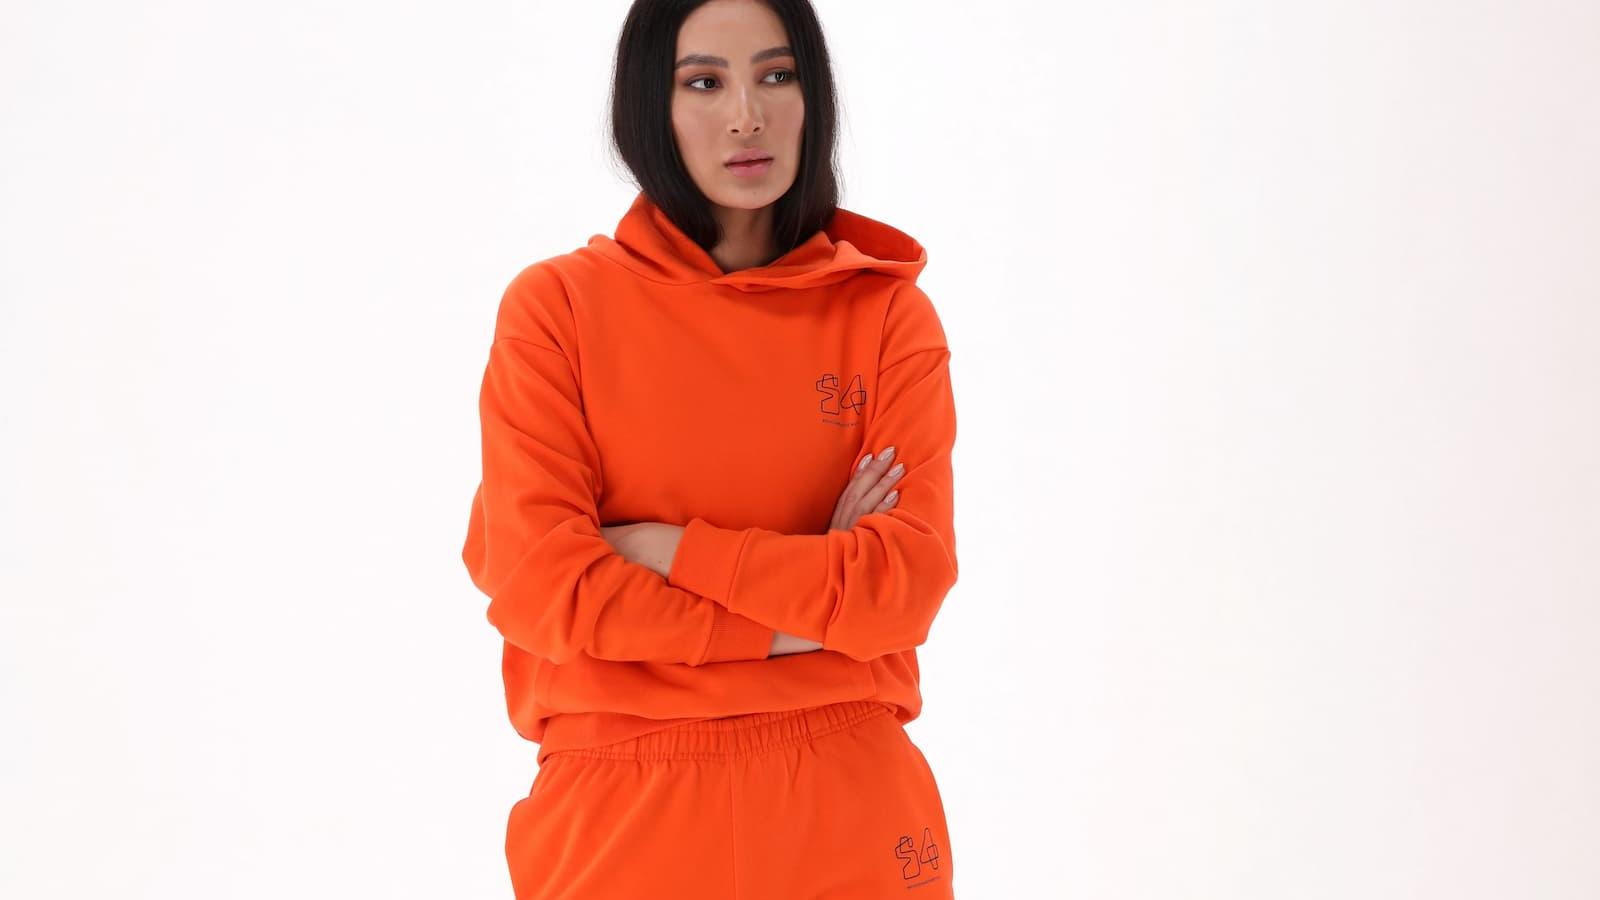 RSPR Athleisure: Sustainably made for your safety and comfort